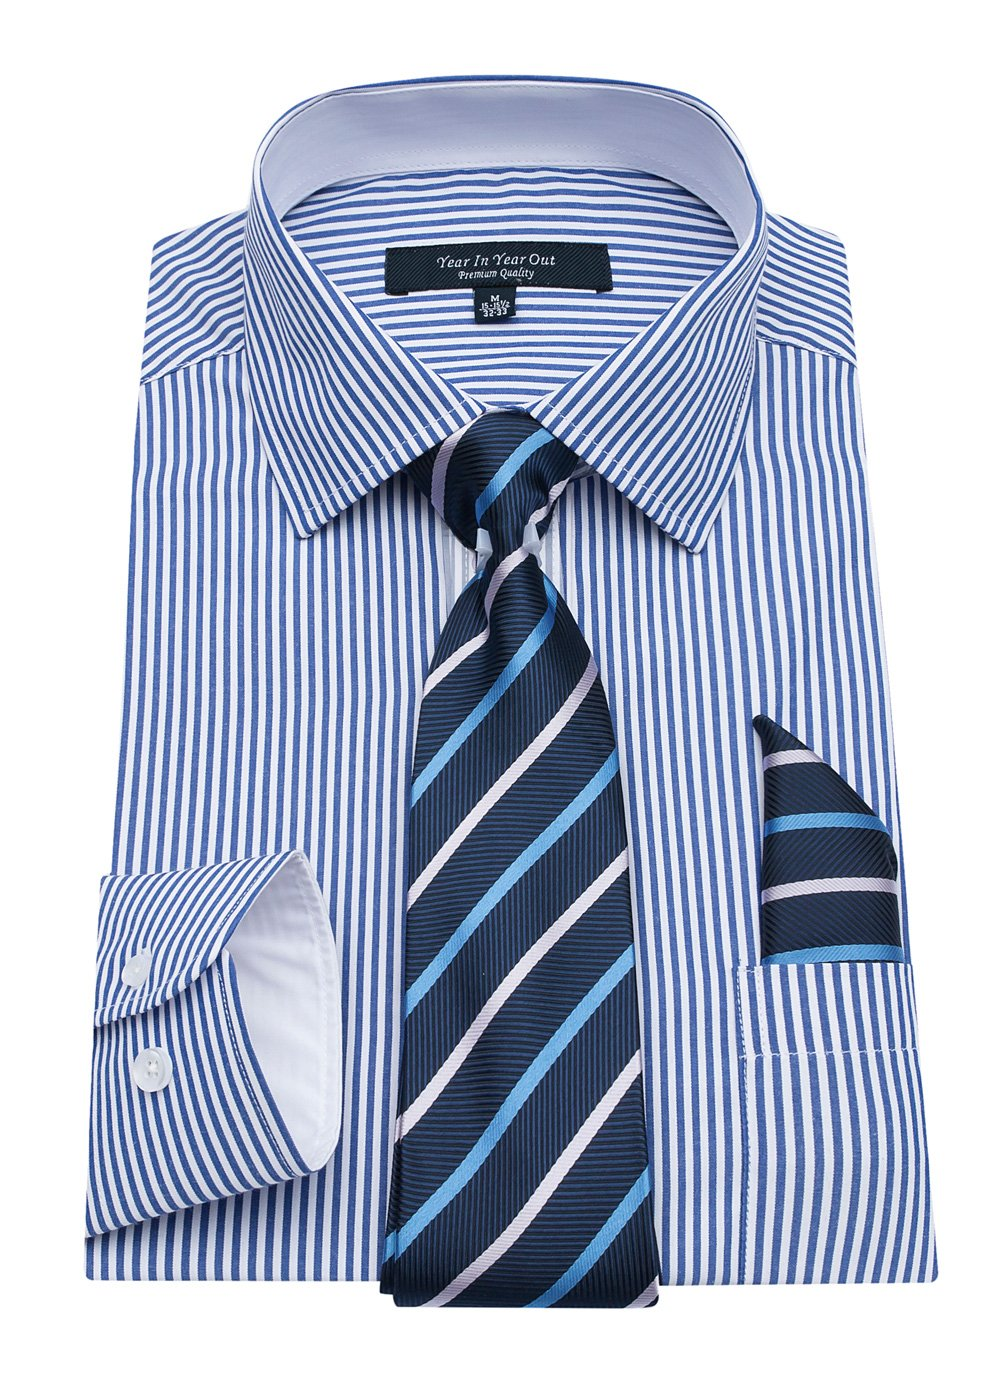 YEAR IN YEAR OUT Mens Long Sleeve Dress Shirts Slim Fit Shirts For Men With Mathing Tie and Handkerchief,Blue Stripe,16''-16.5''Neck 34''-35'' Sleeve